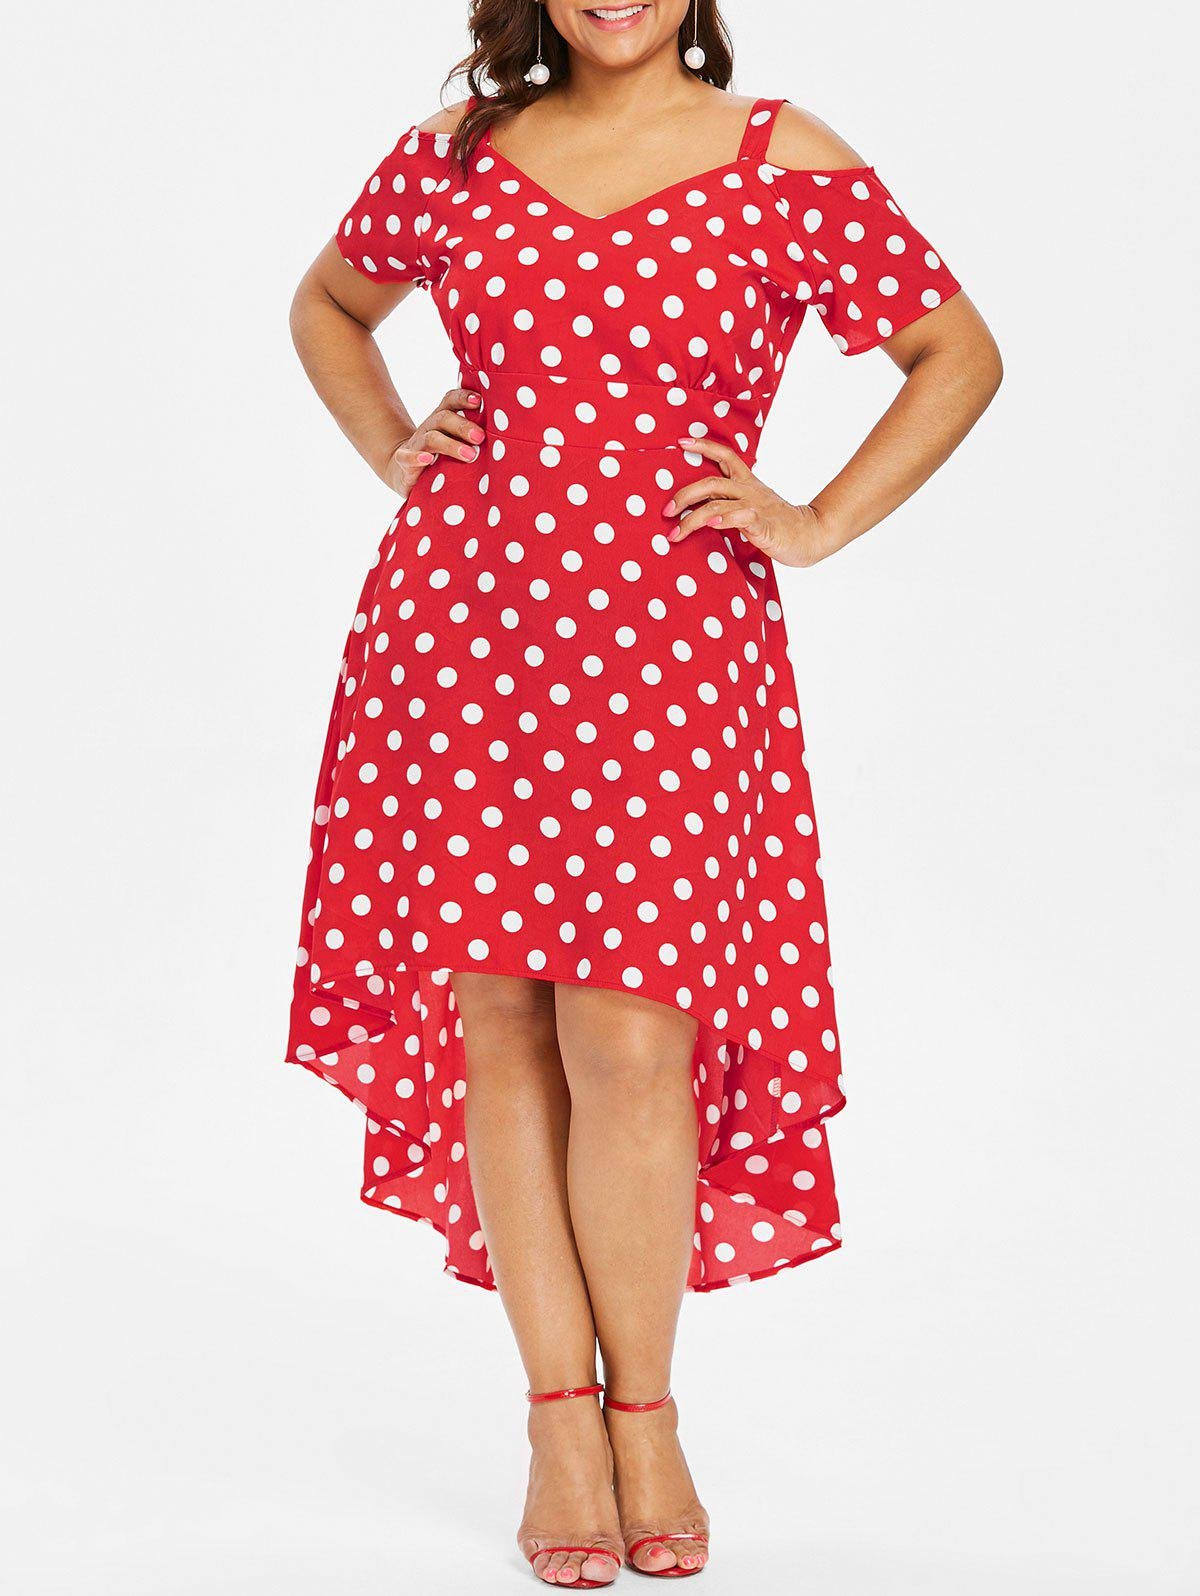 1397b9ac9b 59% OFF] Plus Size Polka Dot High Low Dress | Rosegal